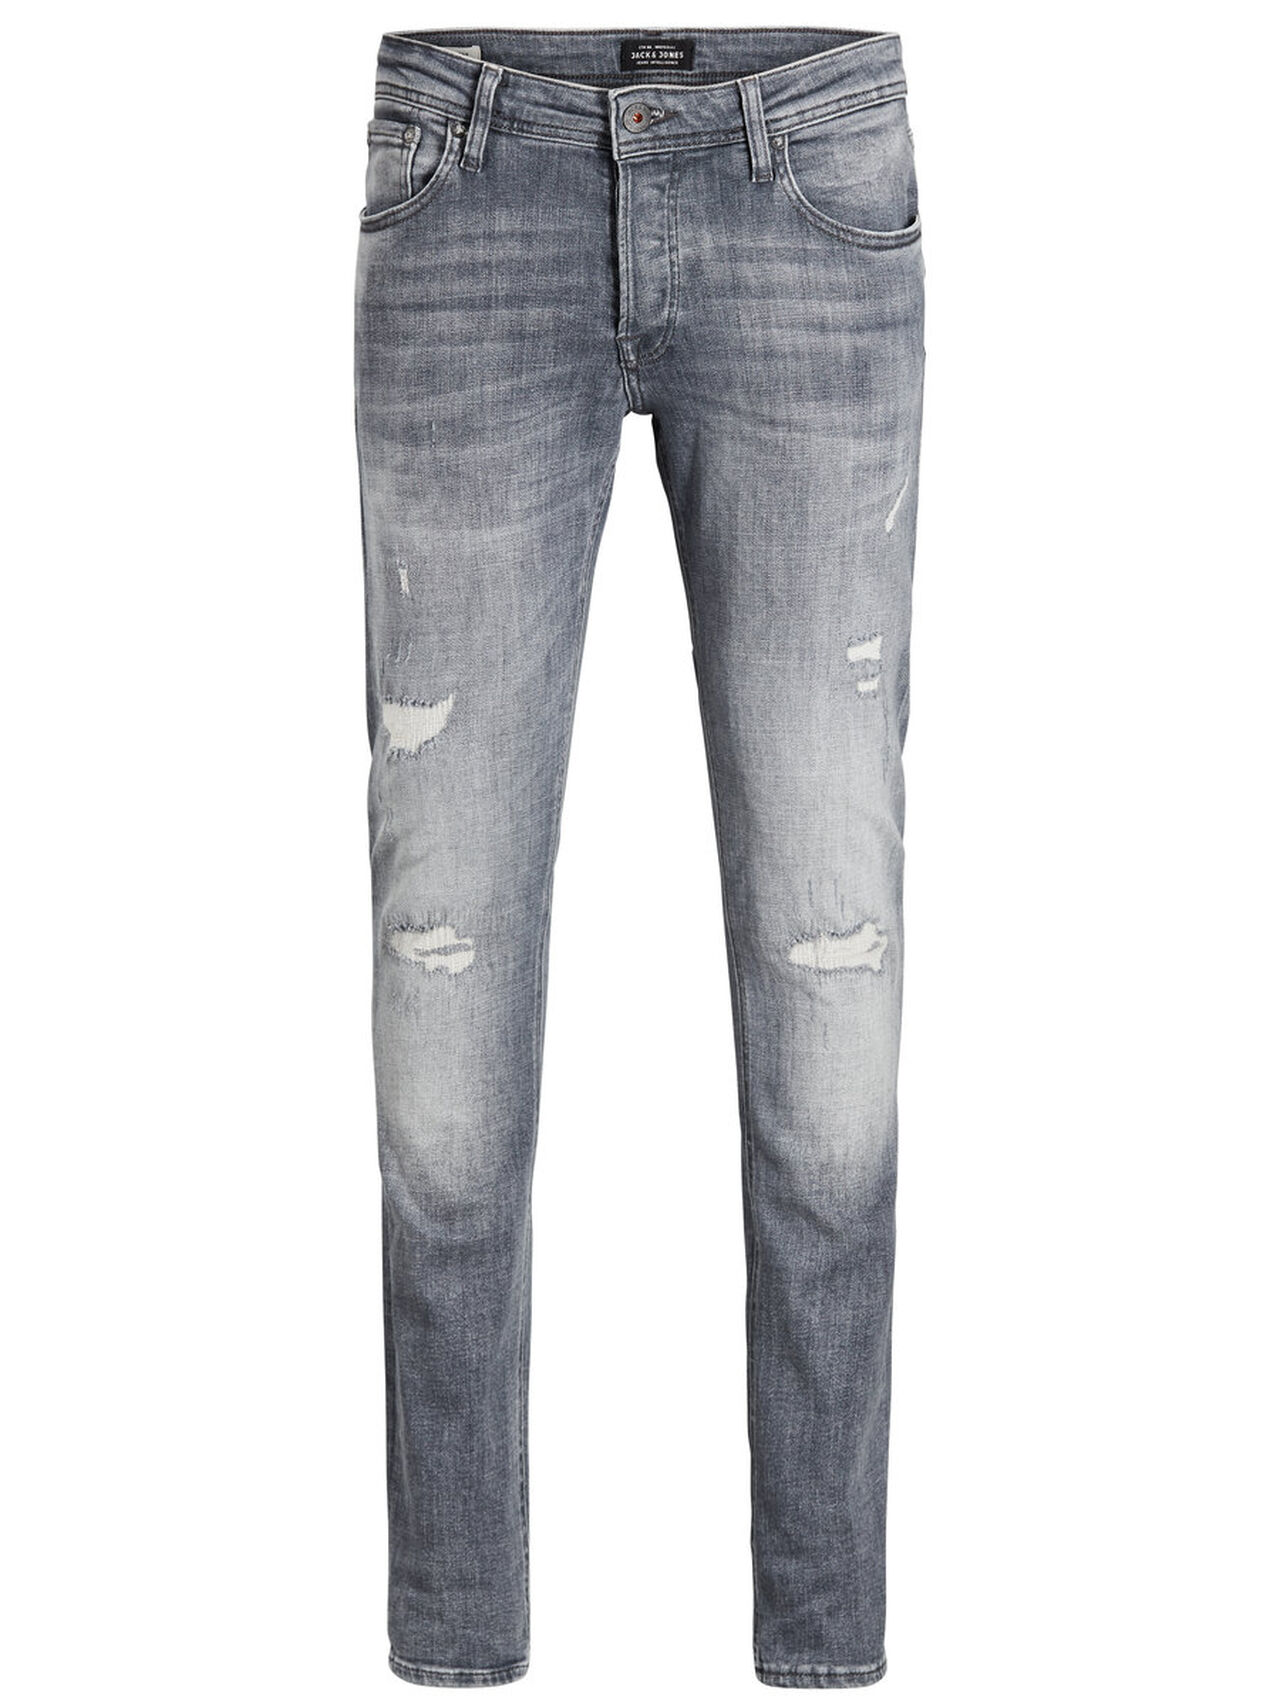 Glenn Original Jj 052 50sps Slim Fit Jeans